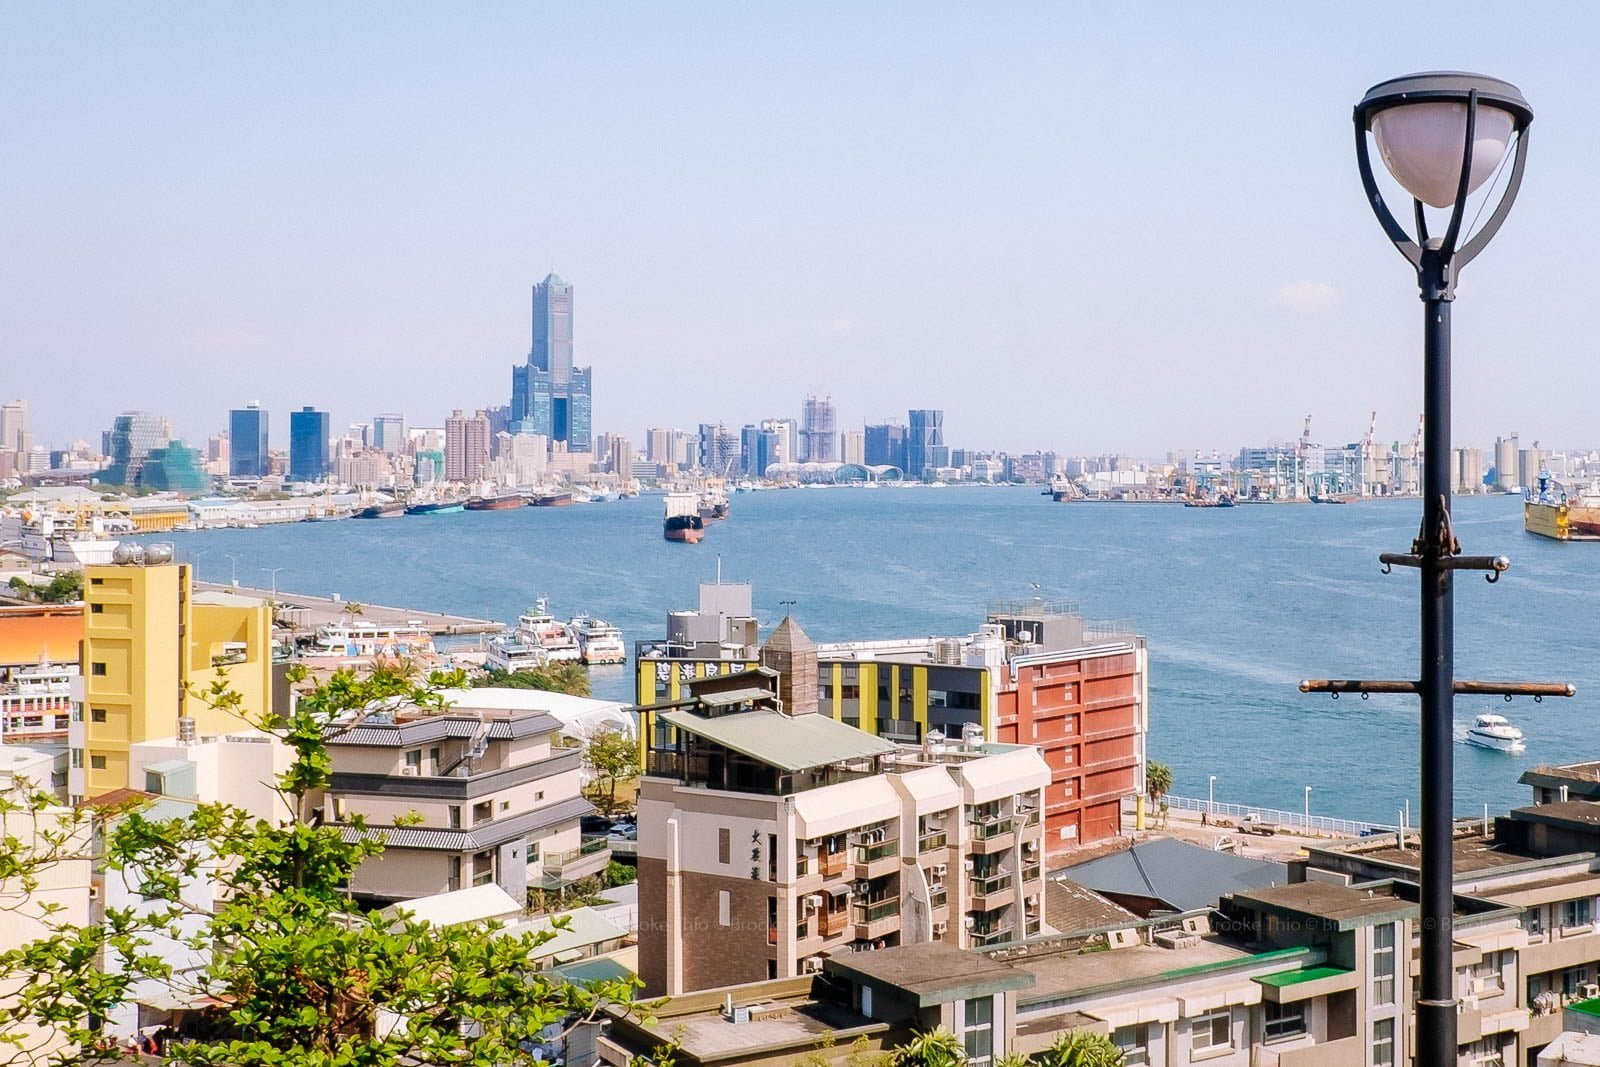 View of Kaohsiung Harbor from the British Consulate at Takow